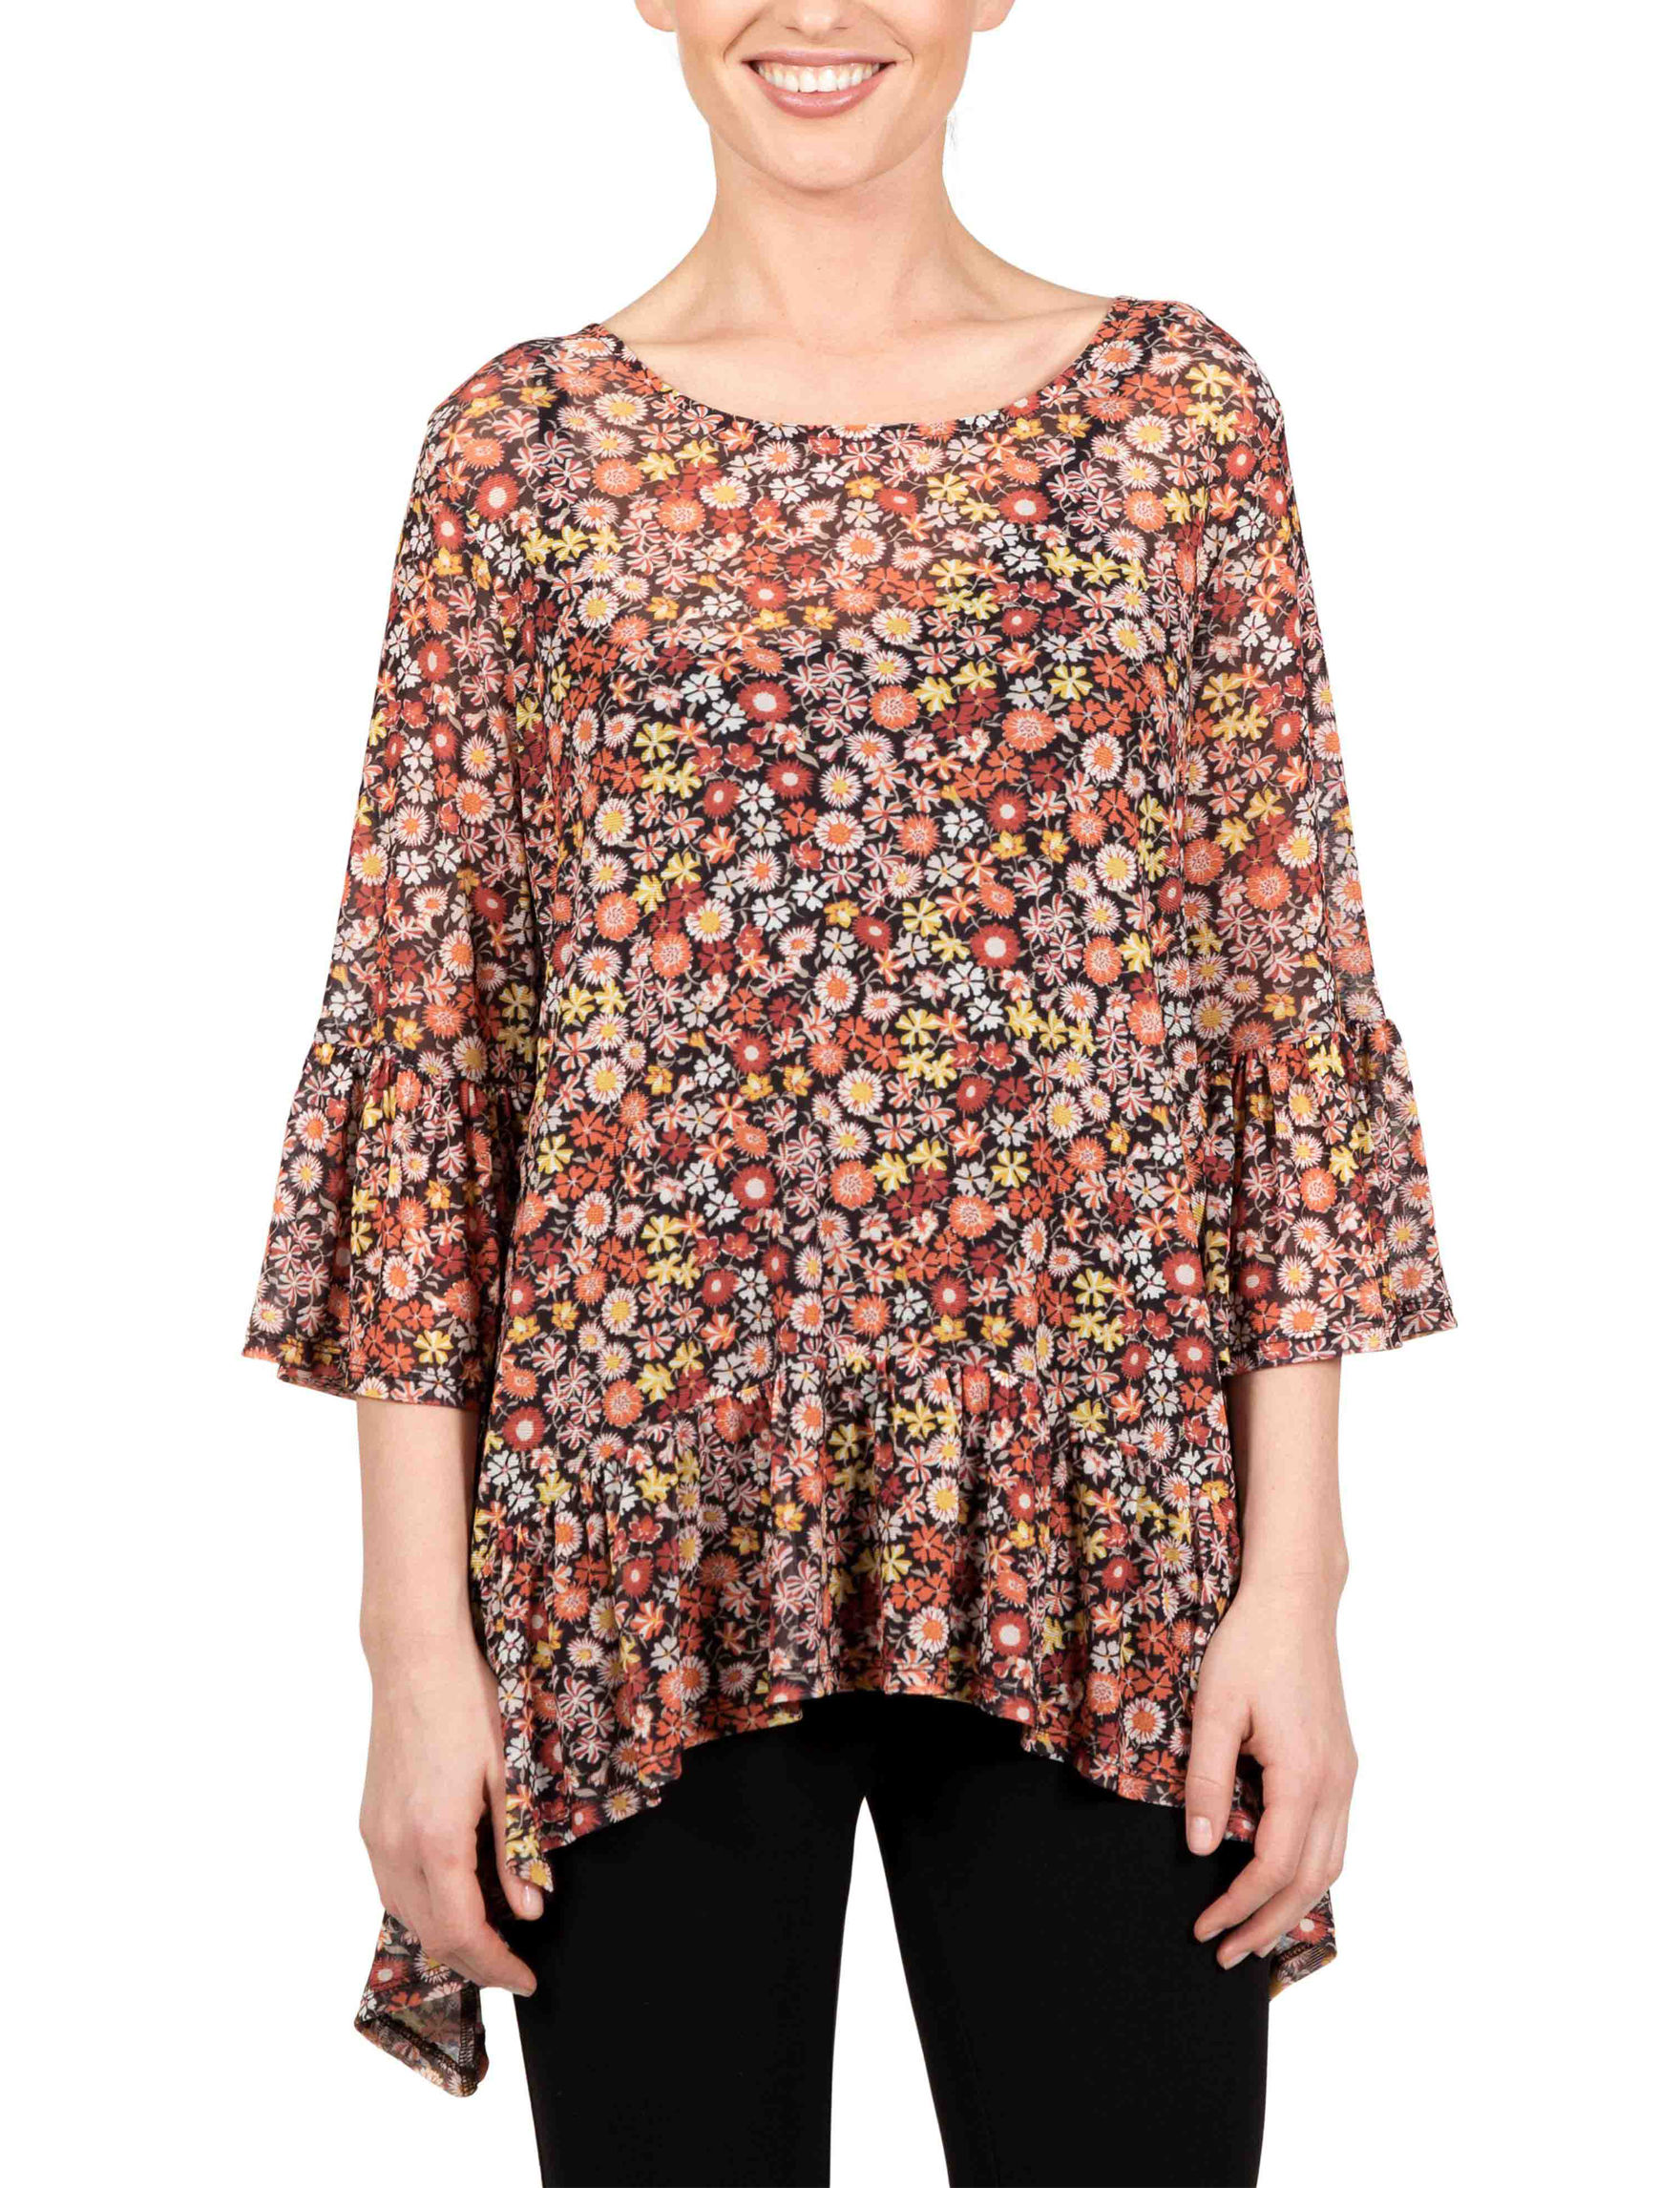 Skyes The Limit Black Multi Everyday & Casual Shirts & Blouses